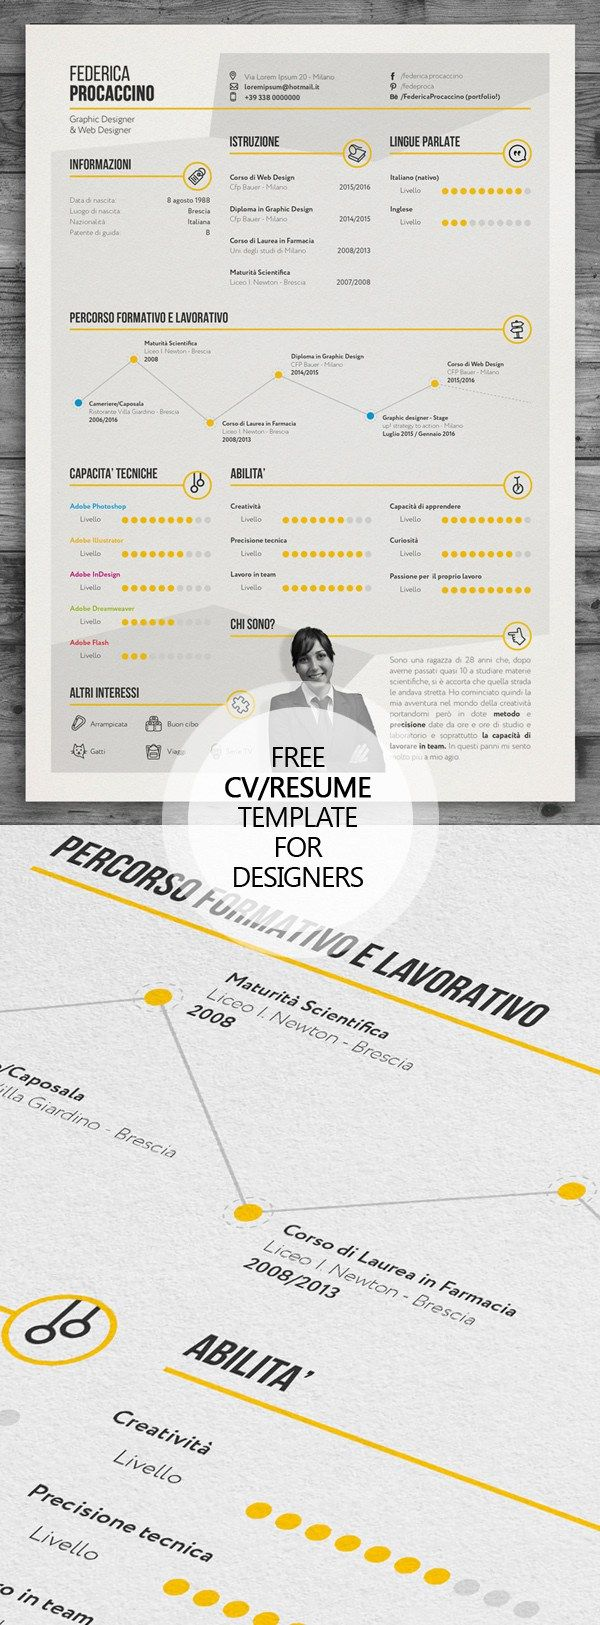 25 best cv images on Pinterest | Creative curriculum, Curriculum and ...